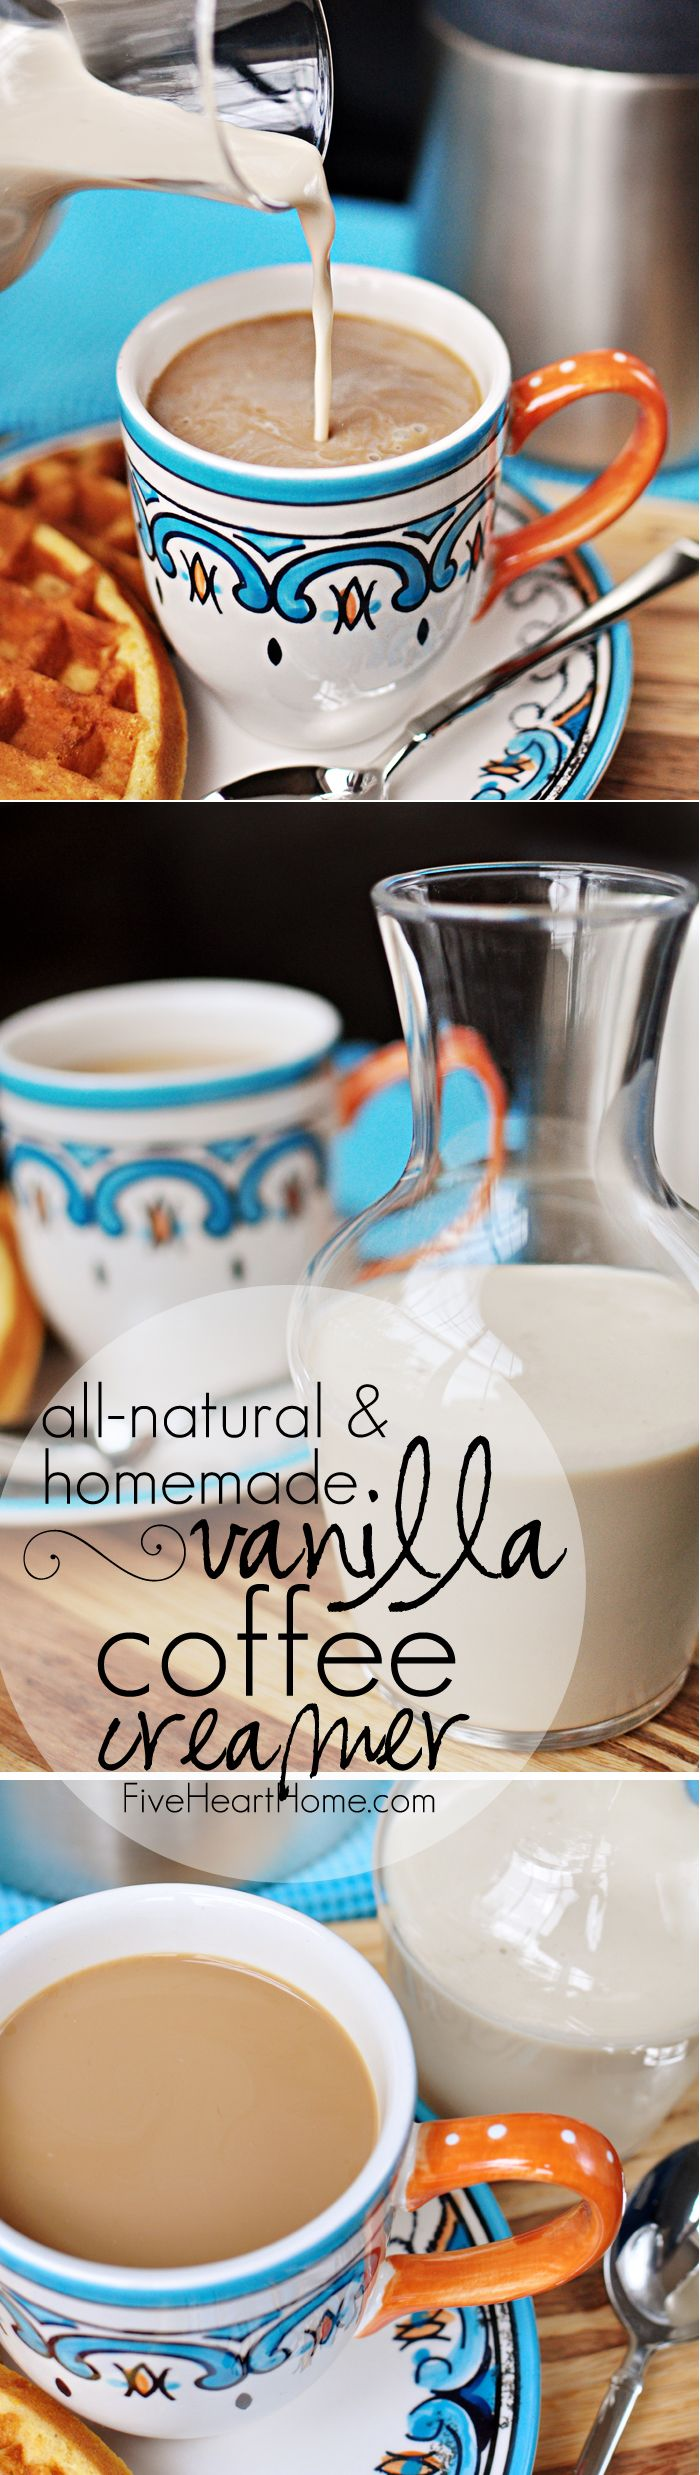 All-Natural and Homemade: Vanilla Coffee Creamer ~ enjoy rich, creamy, vanilla-laced coffee without the preservatives and artificial ingredients of store-bought creamers! | FiveHeartHome.com